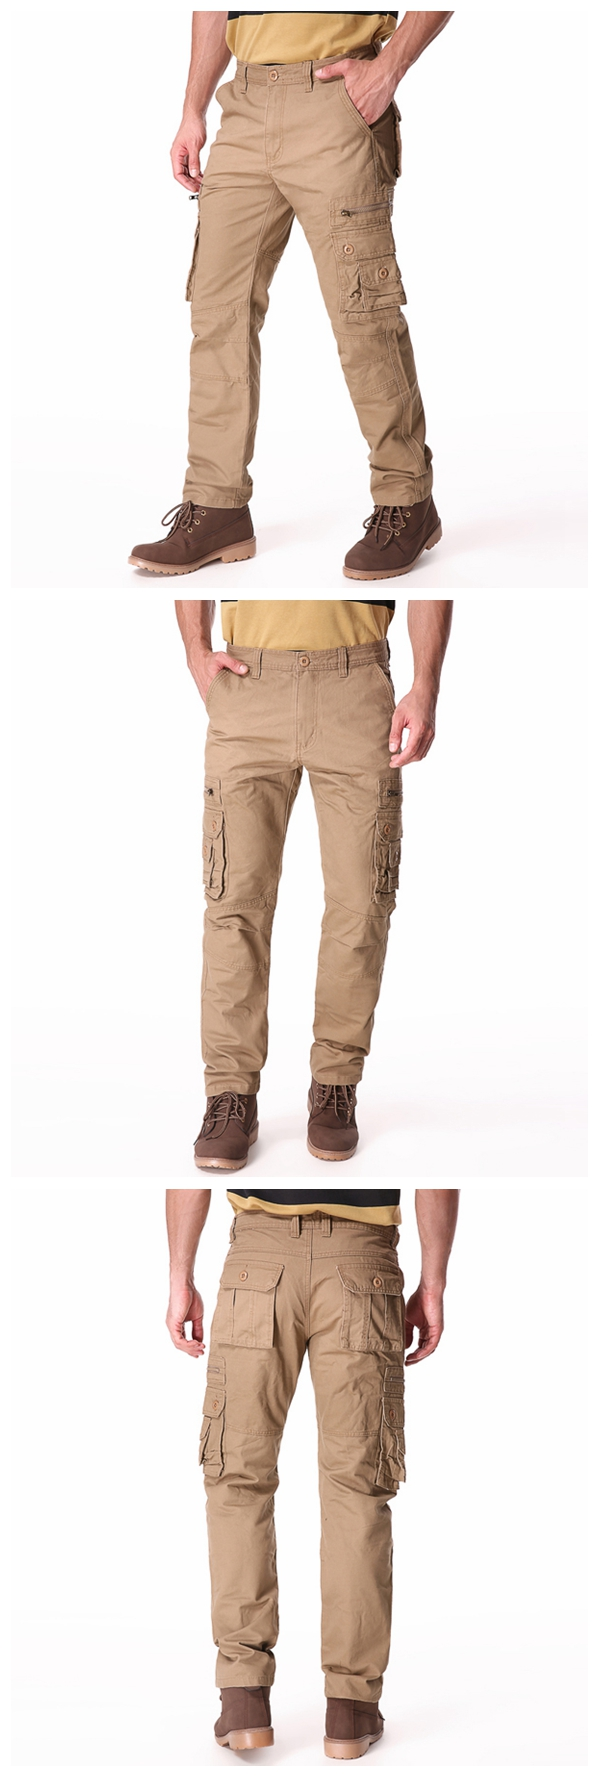 Plus Big Size 30-46 Mens Casual Cargo Pants Solid Color Fashion Multi Pockets Long Trousers